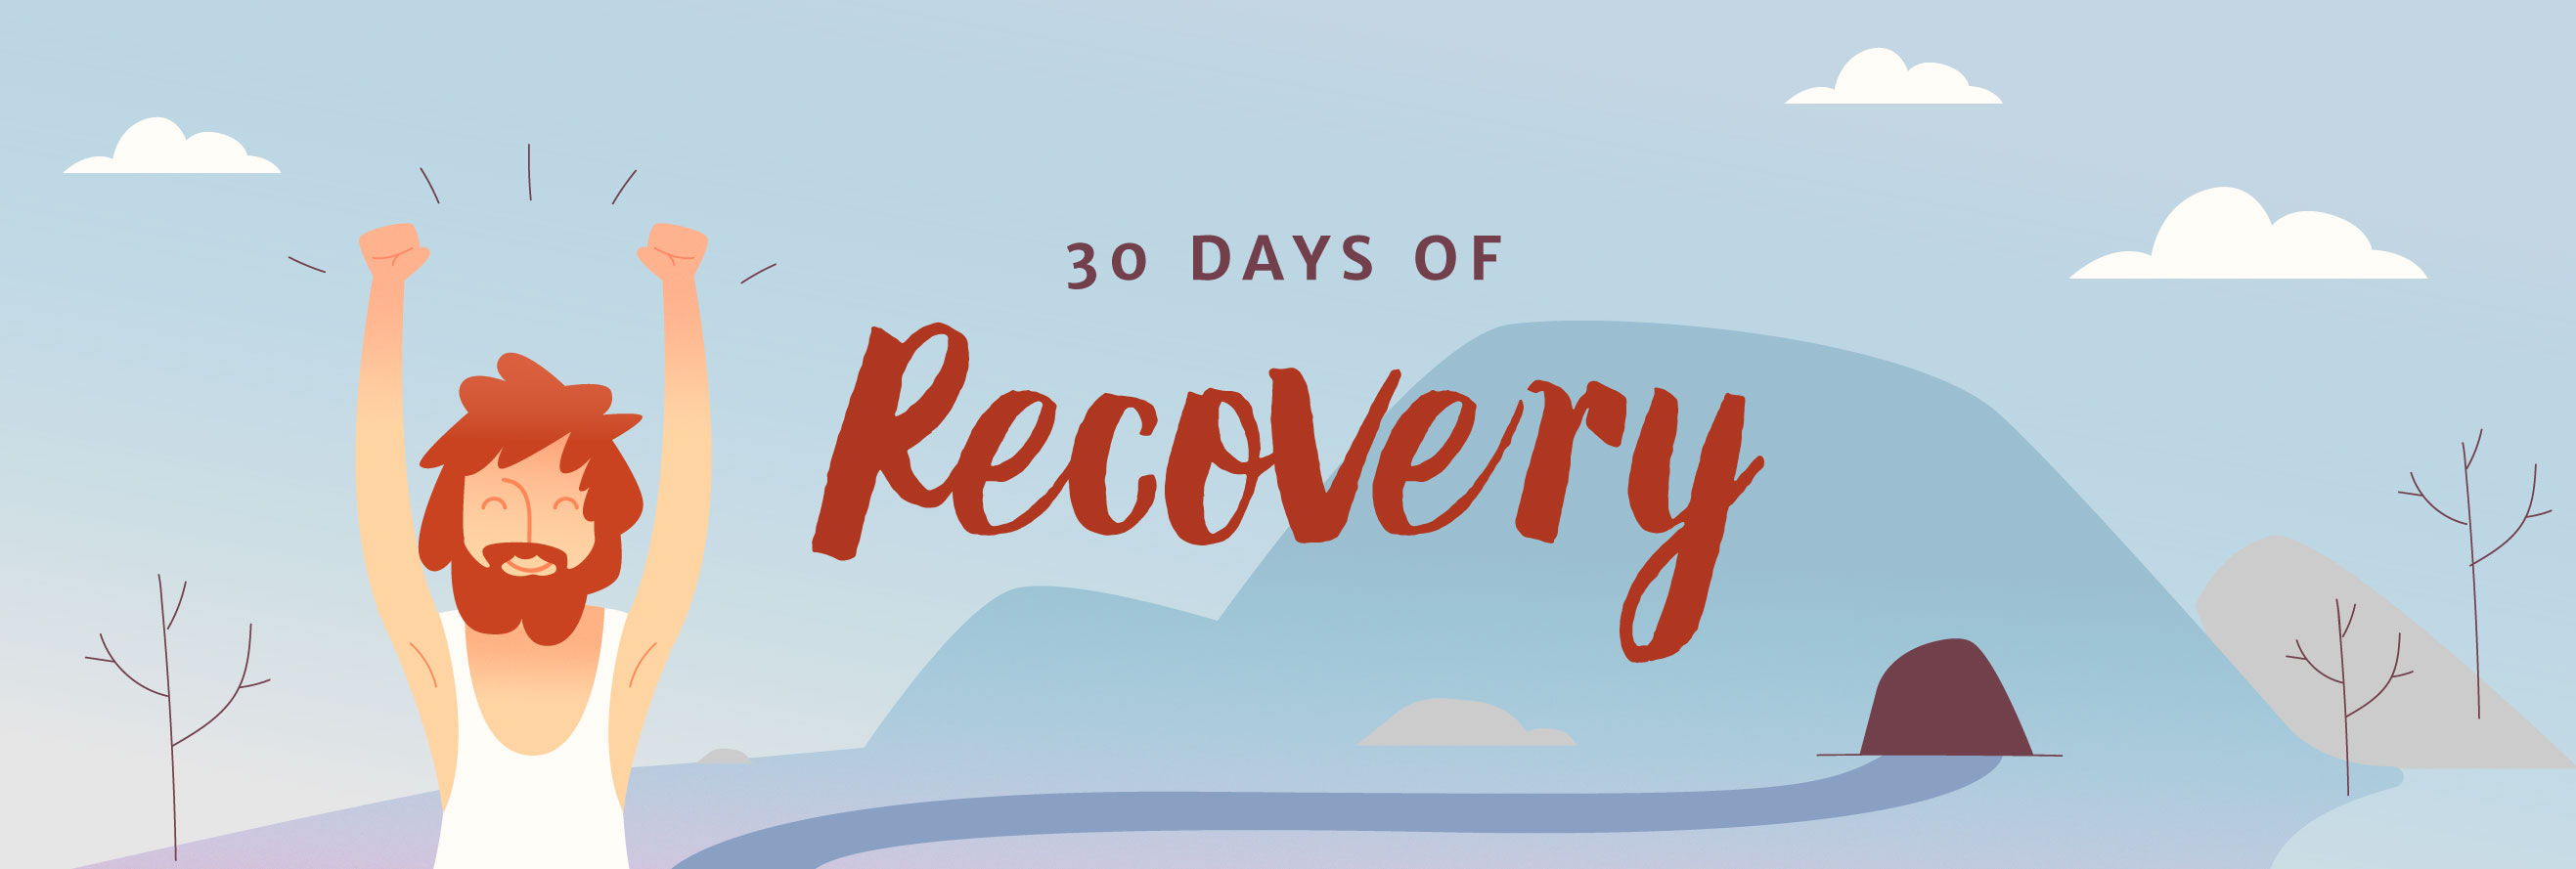 30 Days of Recovery